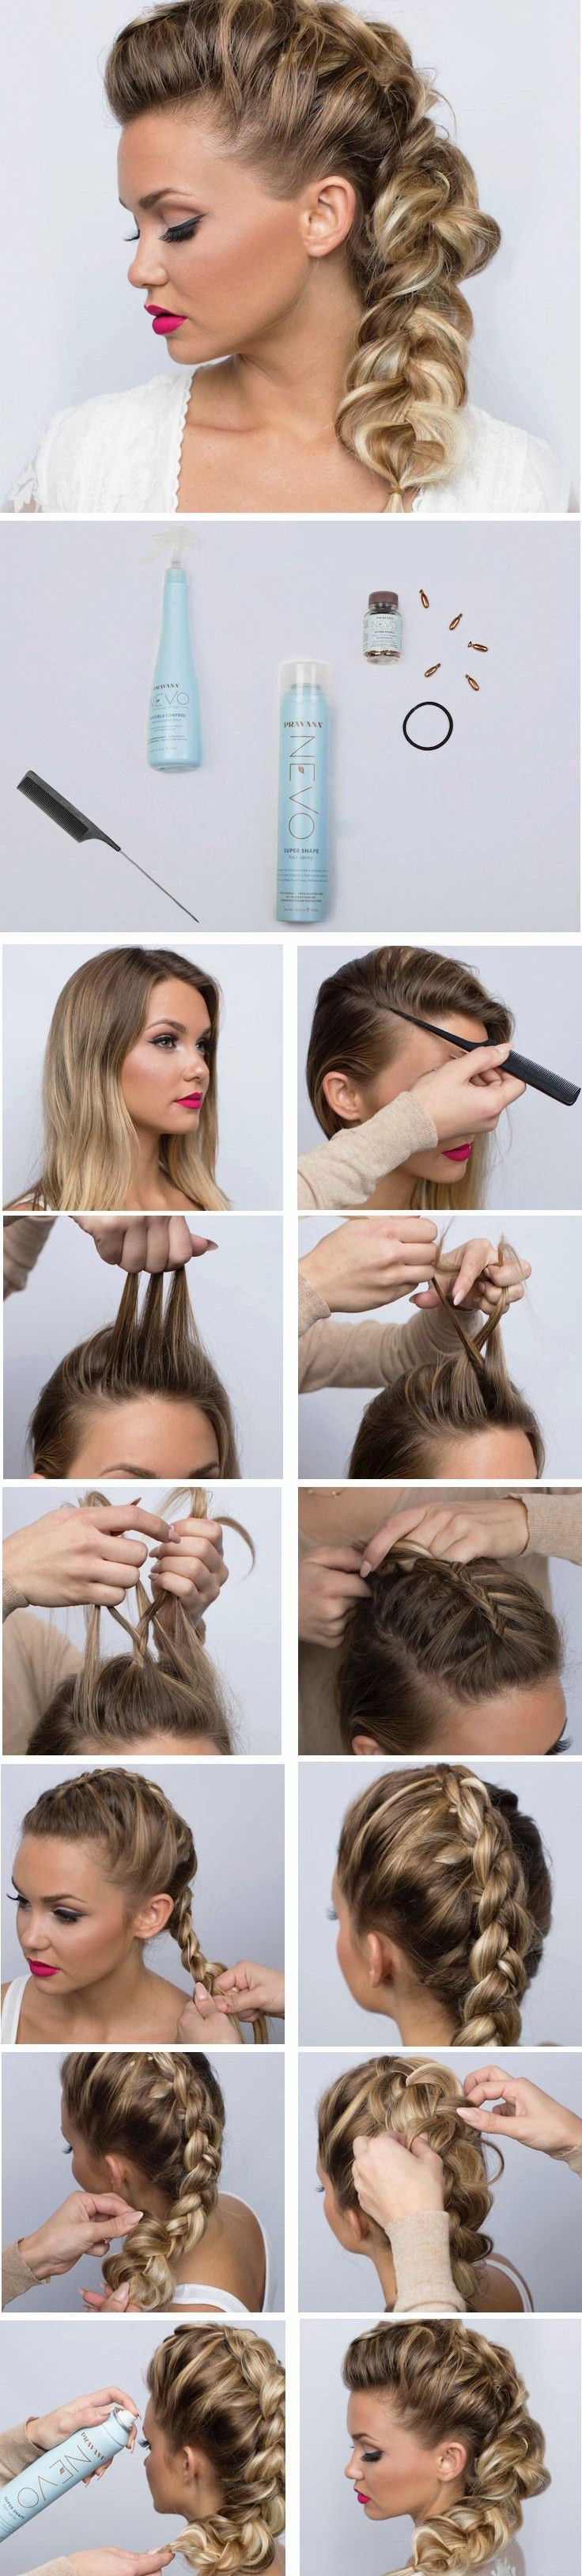 The perfect high bun page cabelos pinterest chignon updo